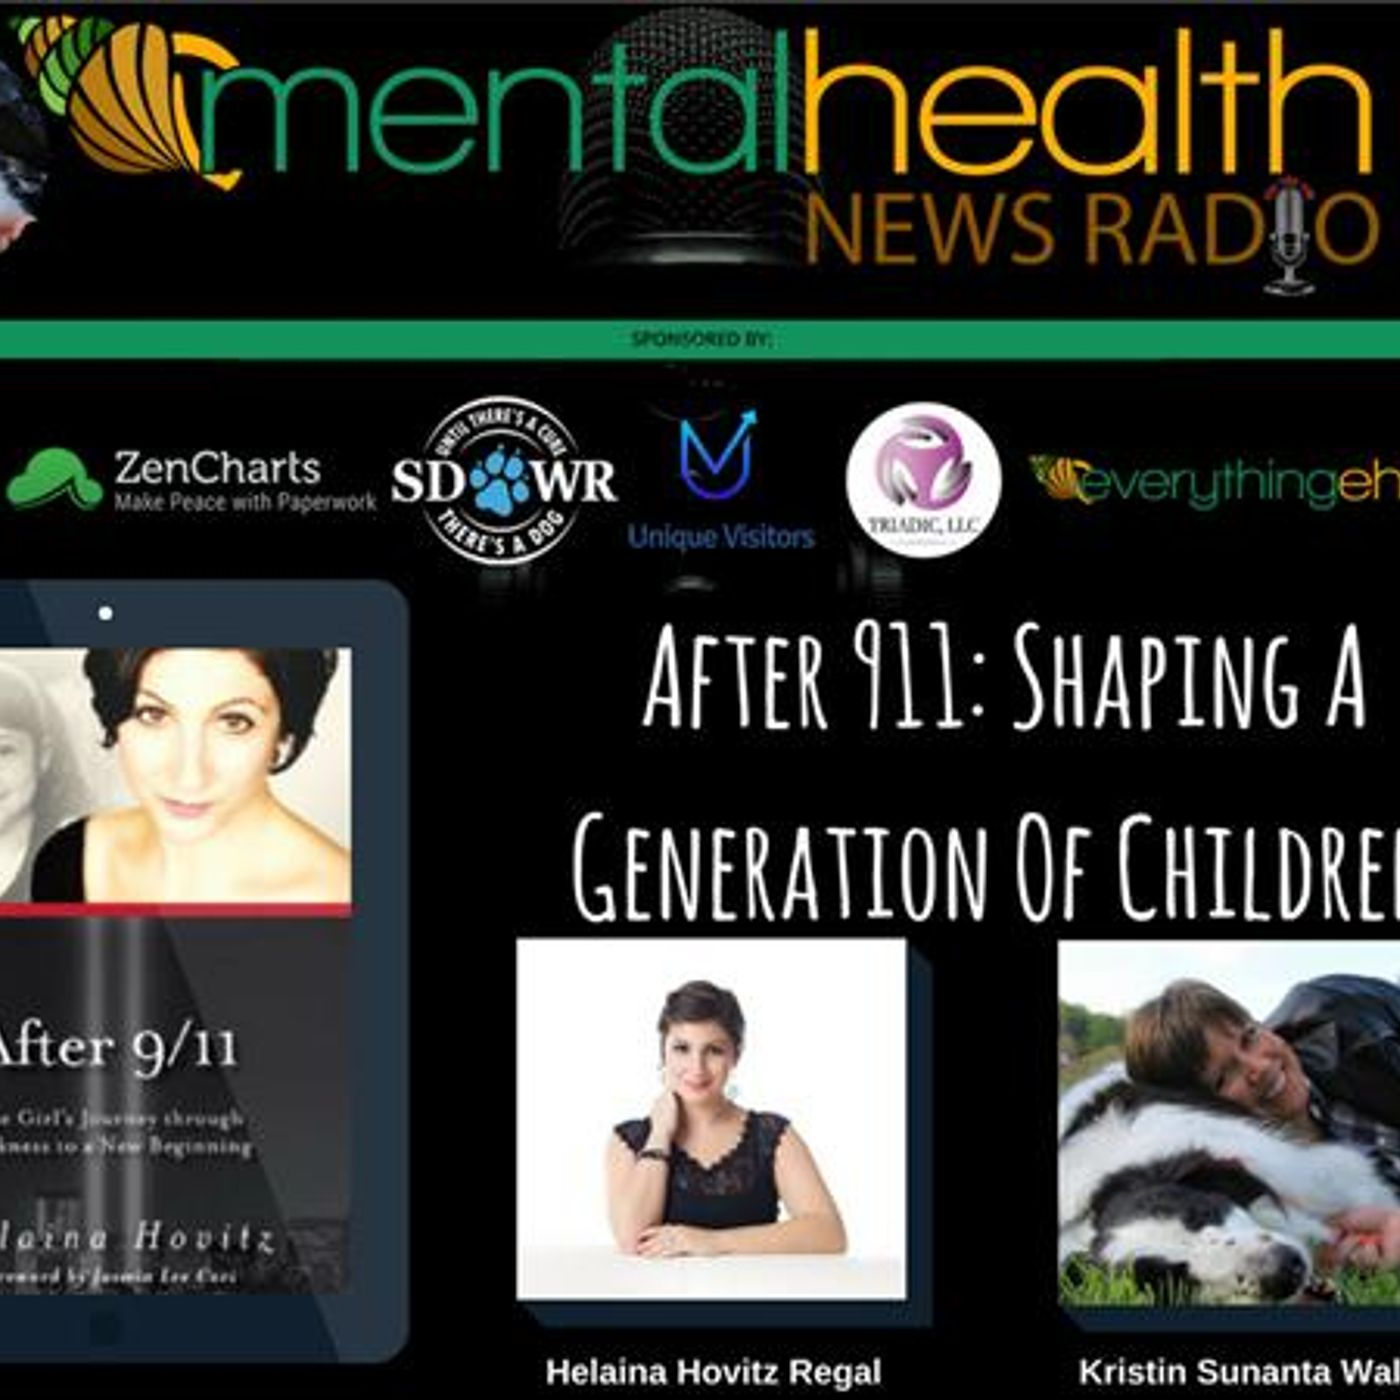 Mental Health News Radio - After 911: Shaping A Generation Of Children with Author Helaina Hovitz Regal